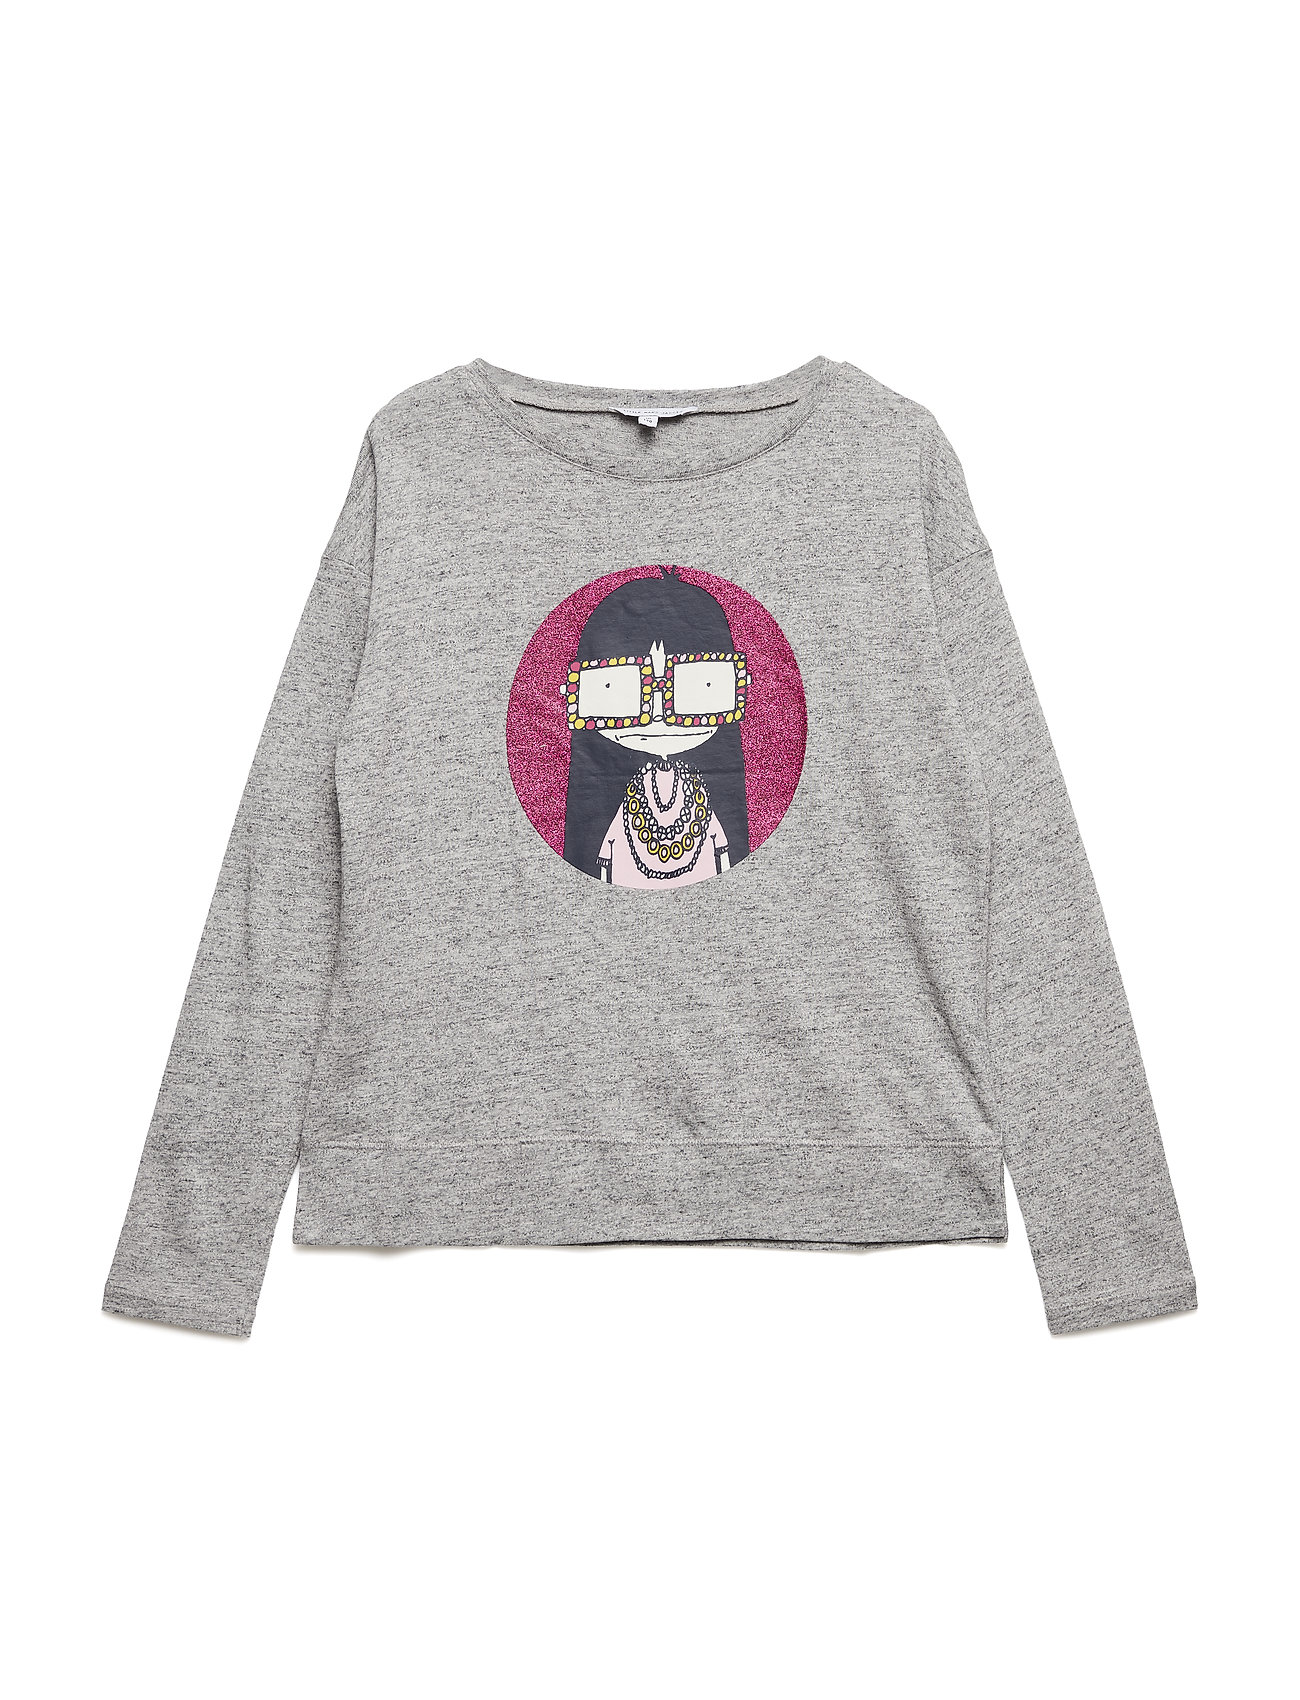 Little Marc Jacobs LONG SLEEVE T-SHIRT - CHINE GREY